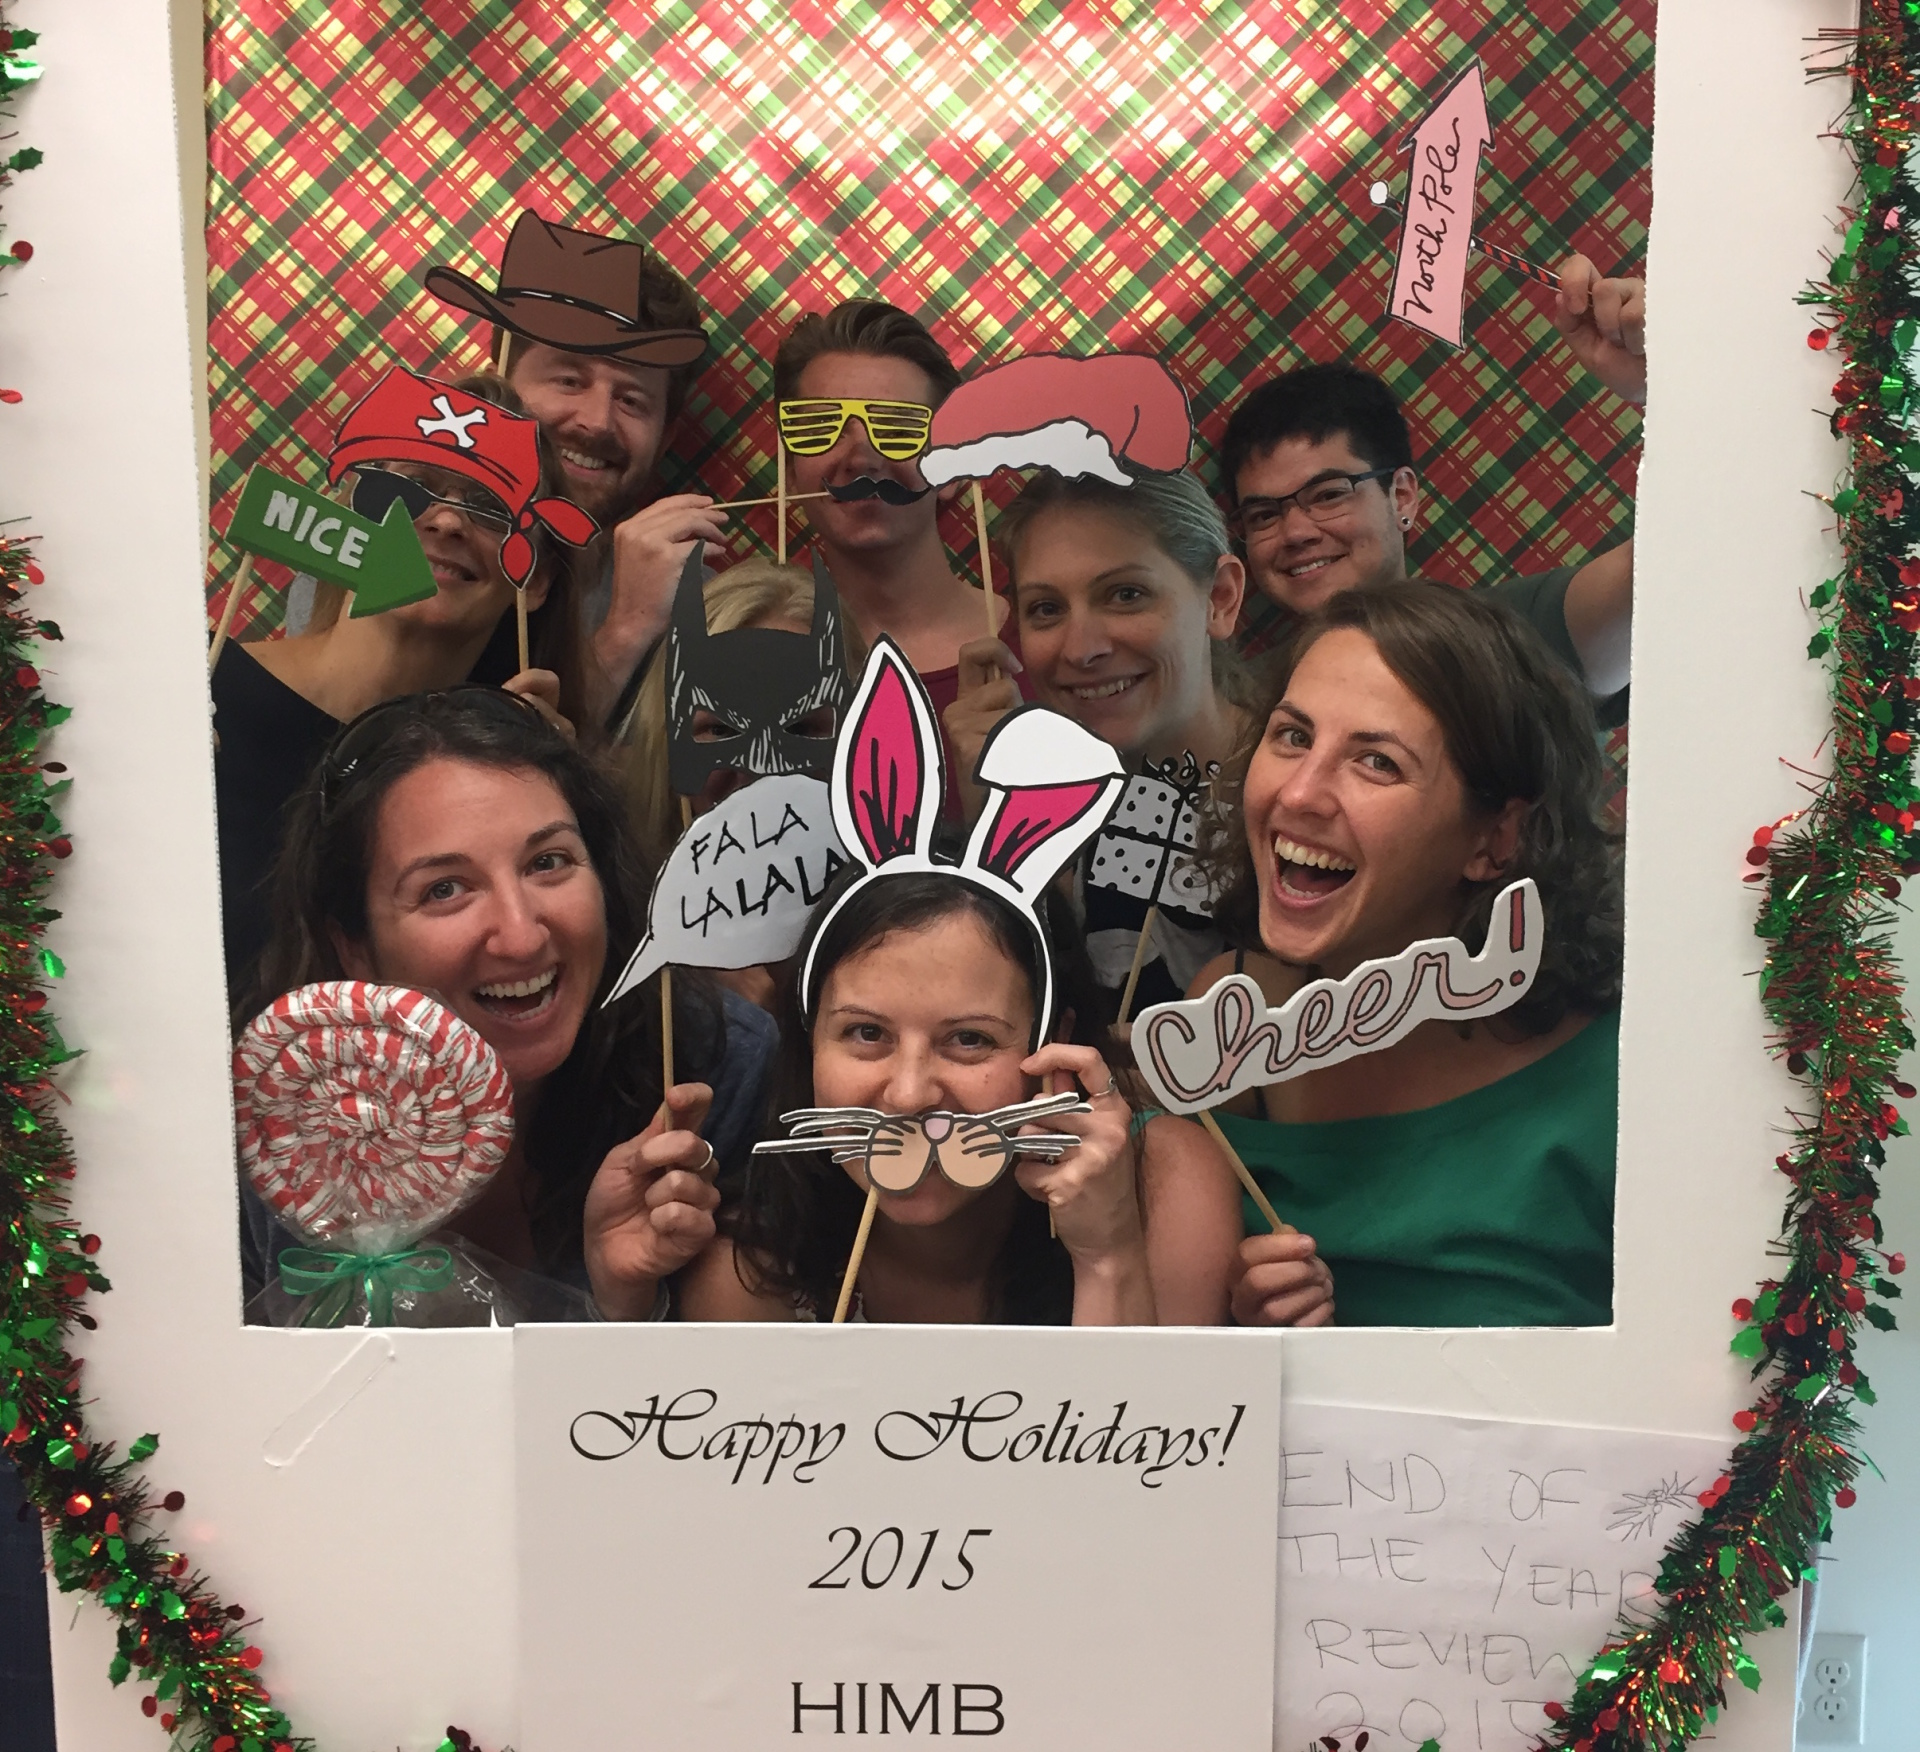 The Gates Lab attends the 2015 HIMB End of Year Review.